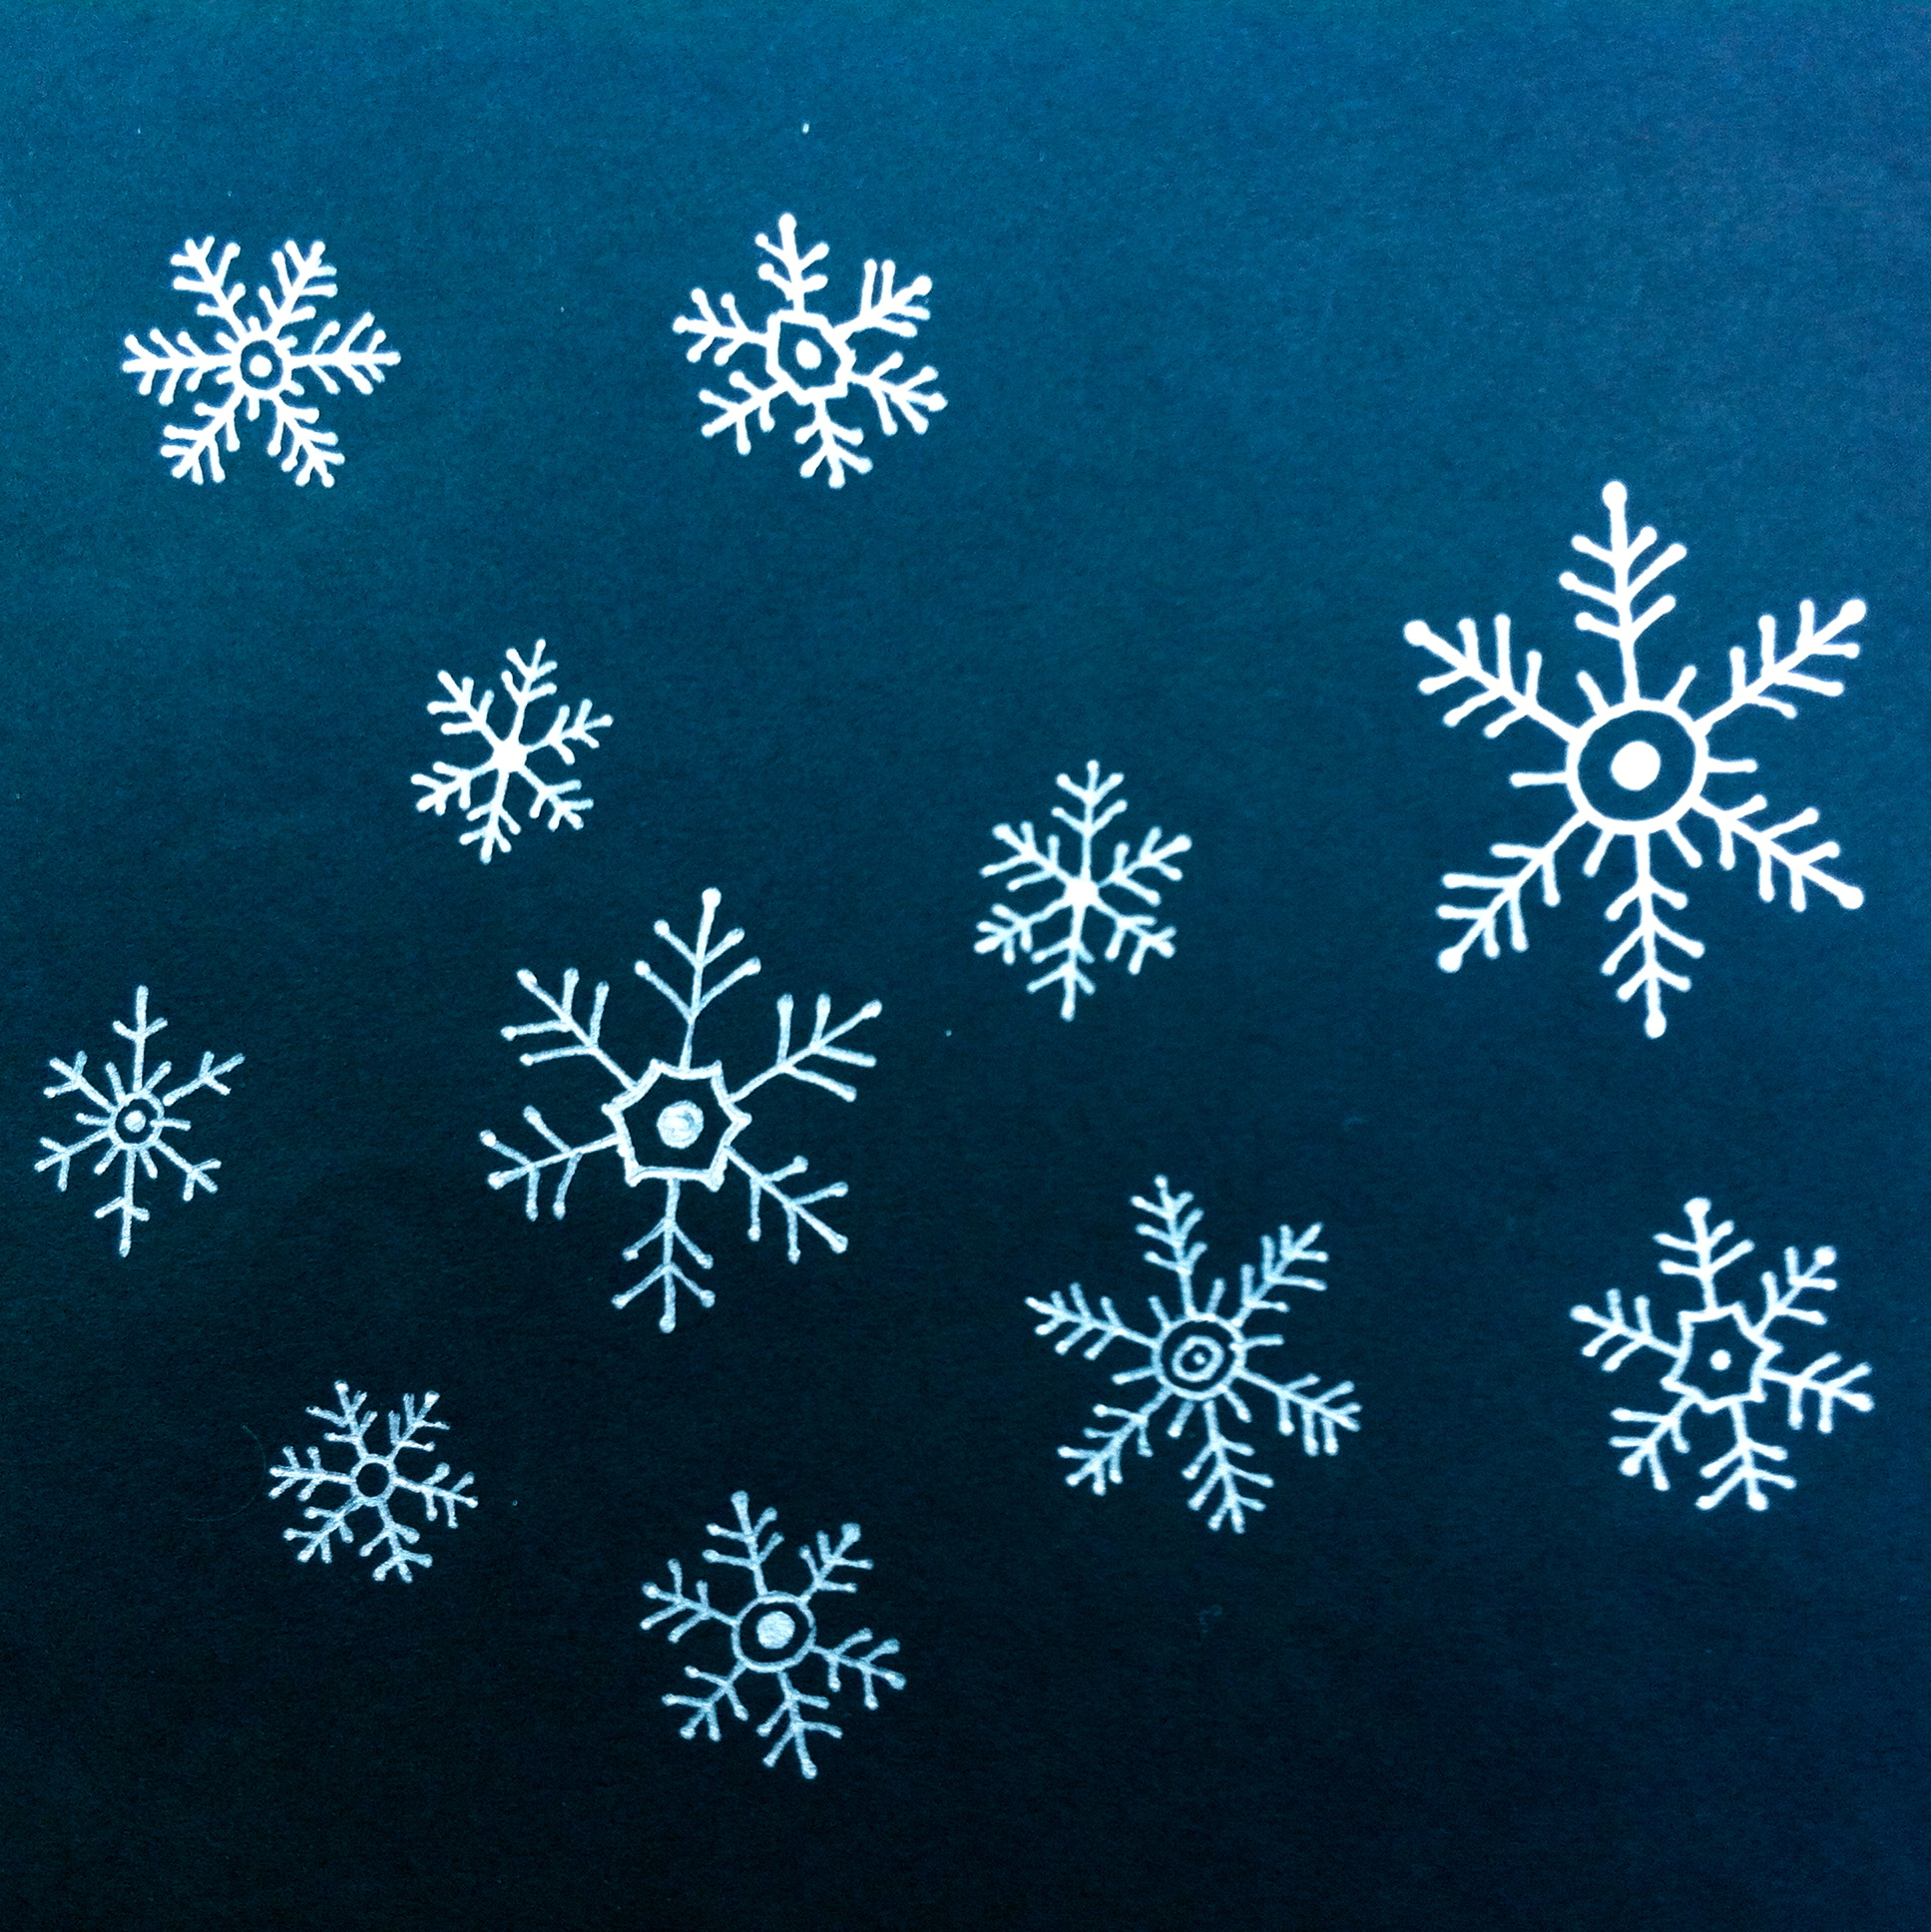 Uncategorized Draw A Snowflake advent calendar the 18th sunny side up i love drawing snowflakes its my favourite thing will show you how to do it